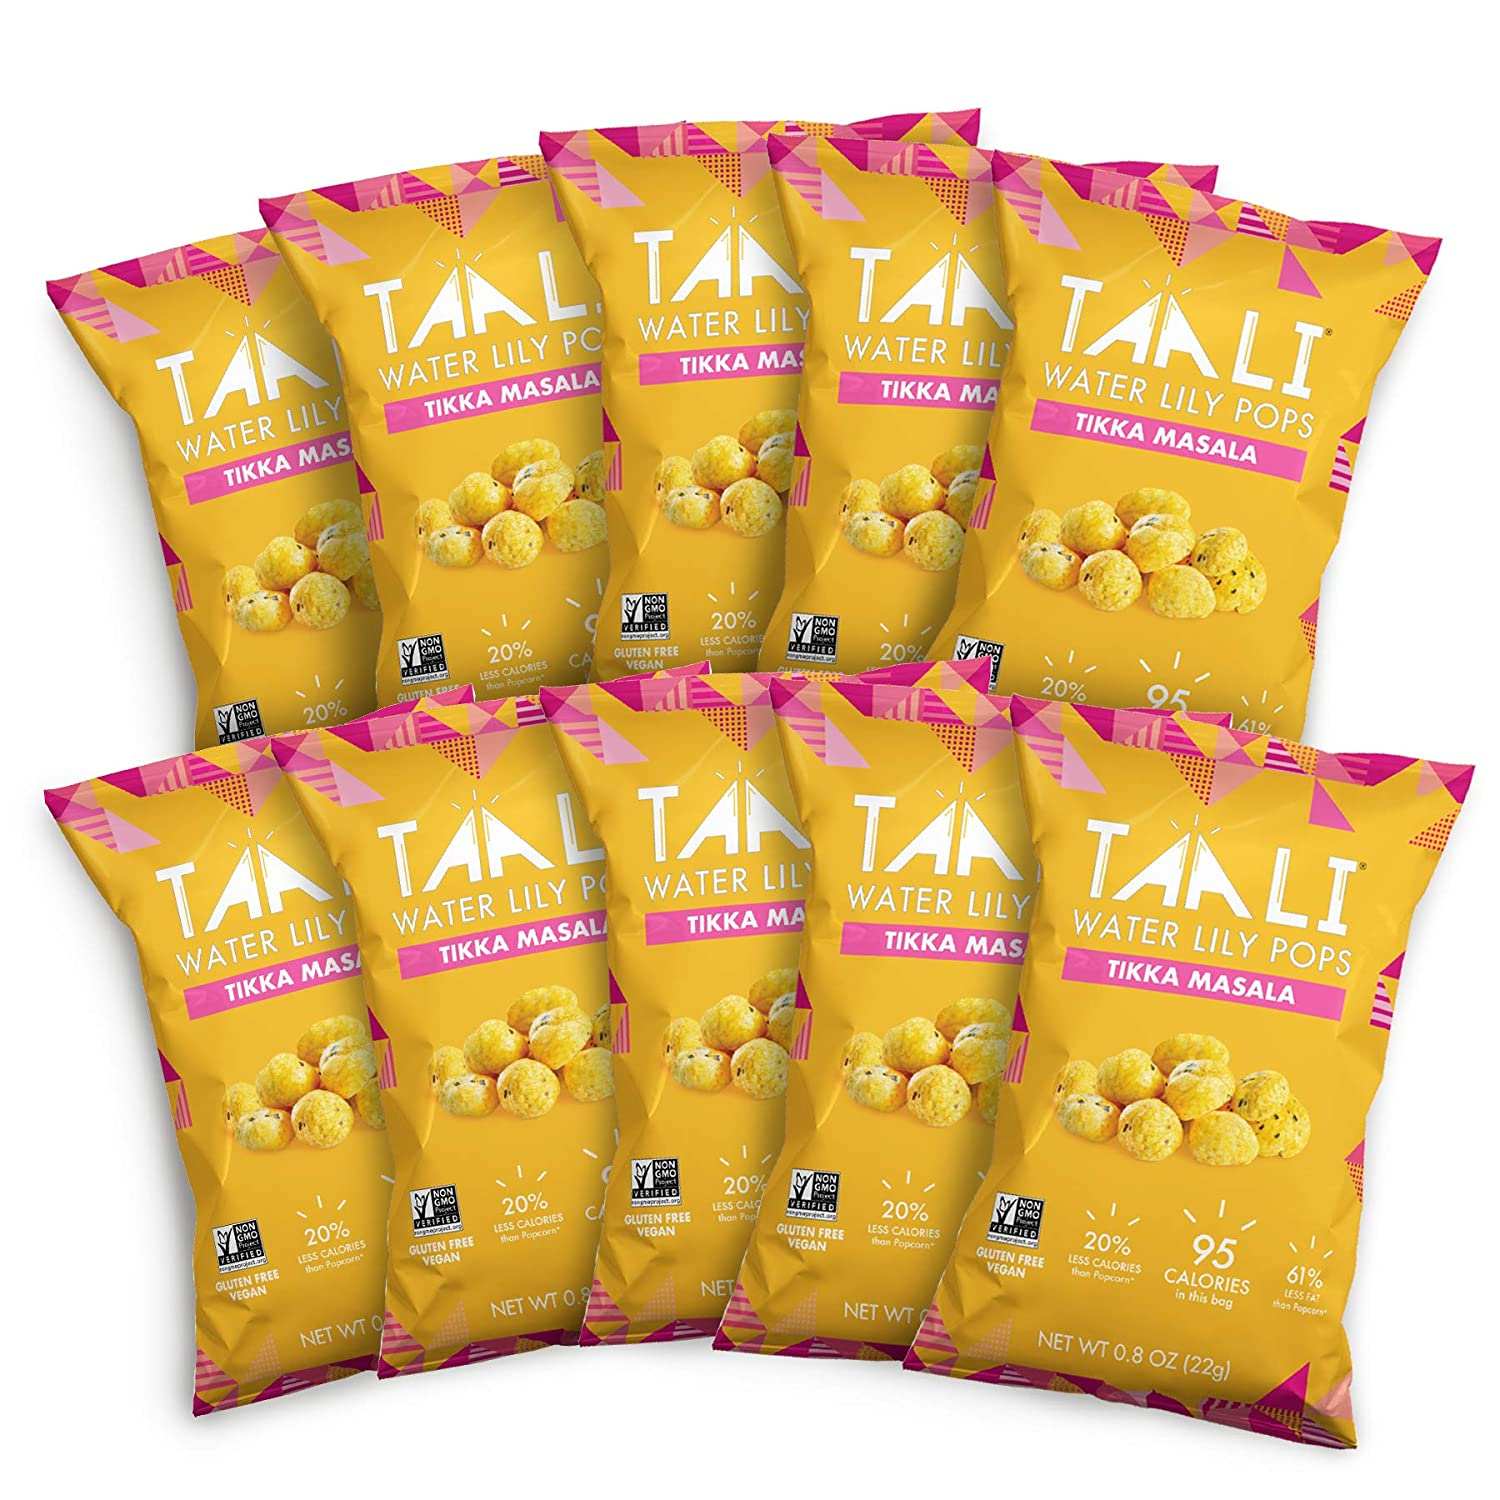 Taali Tikka Masala Water Lily Pops (10-Pack) - Savory Flavor from India   Protein-Rich Roasted Snack   Non GMO Verified   Individual 0.8 oz Bags